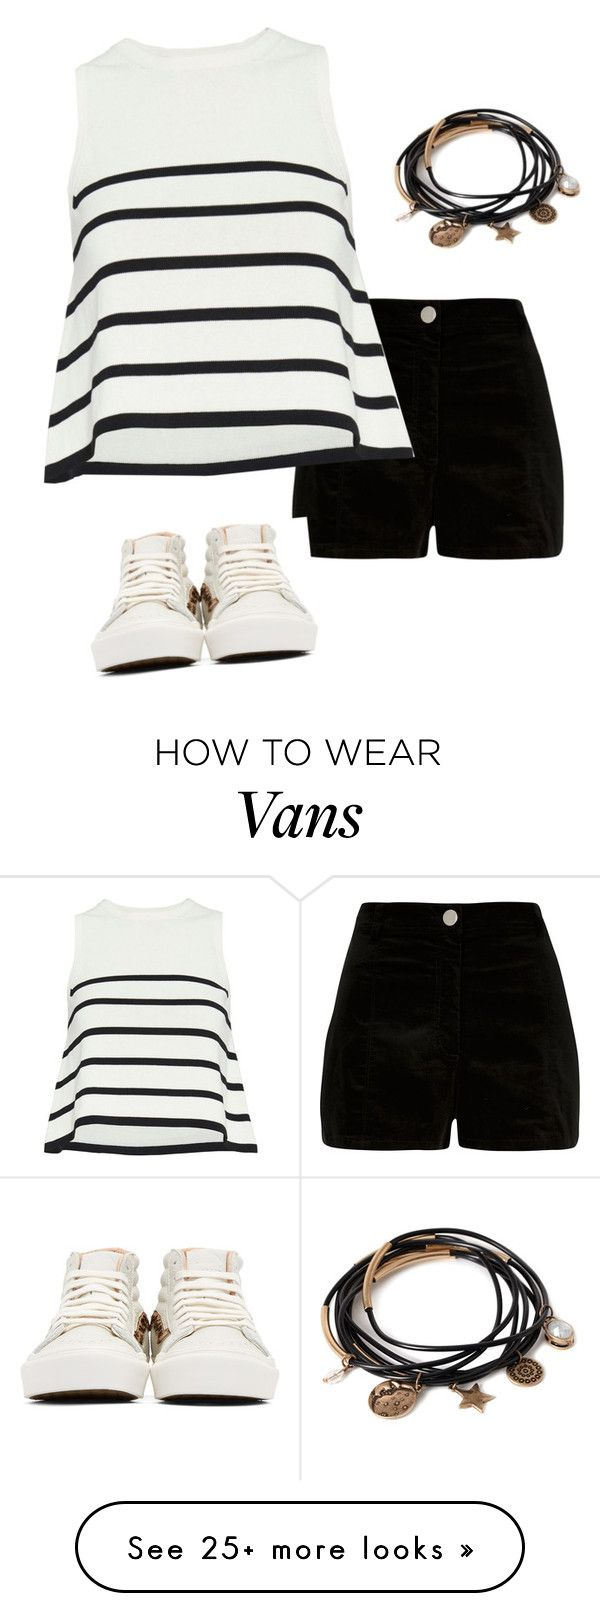 """Untitled #62"" by mabro on Polyvore featuring River Island, Cardigan, Vans and Forever 21"